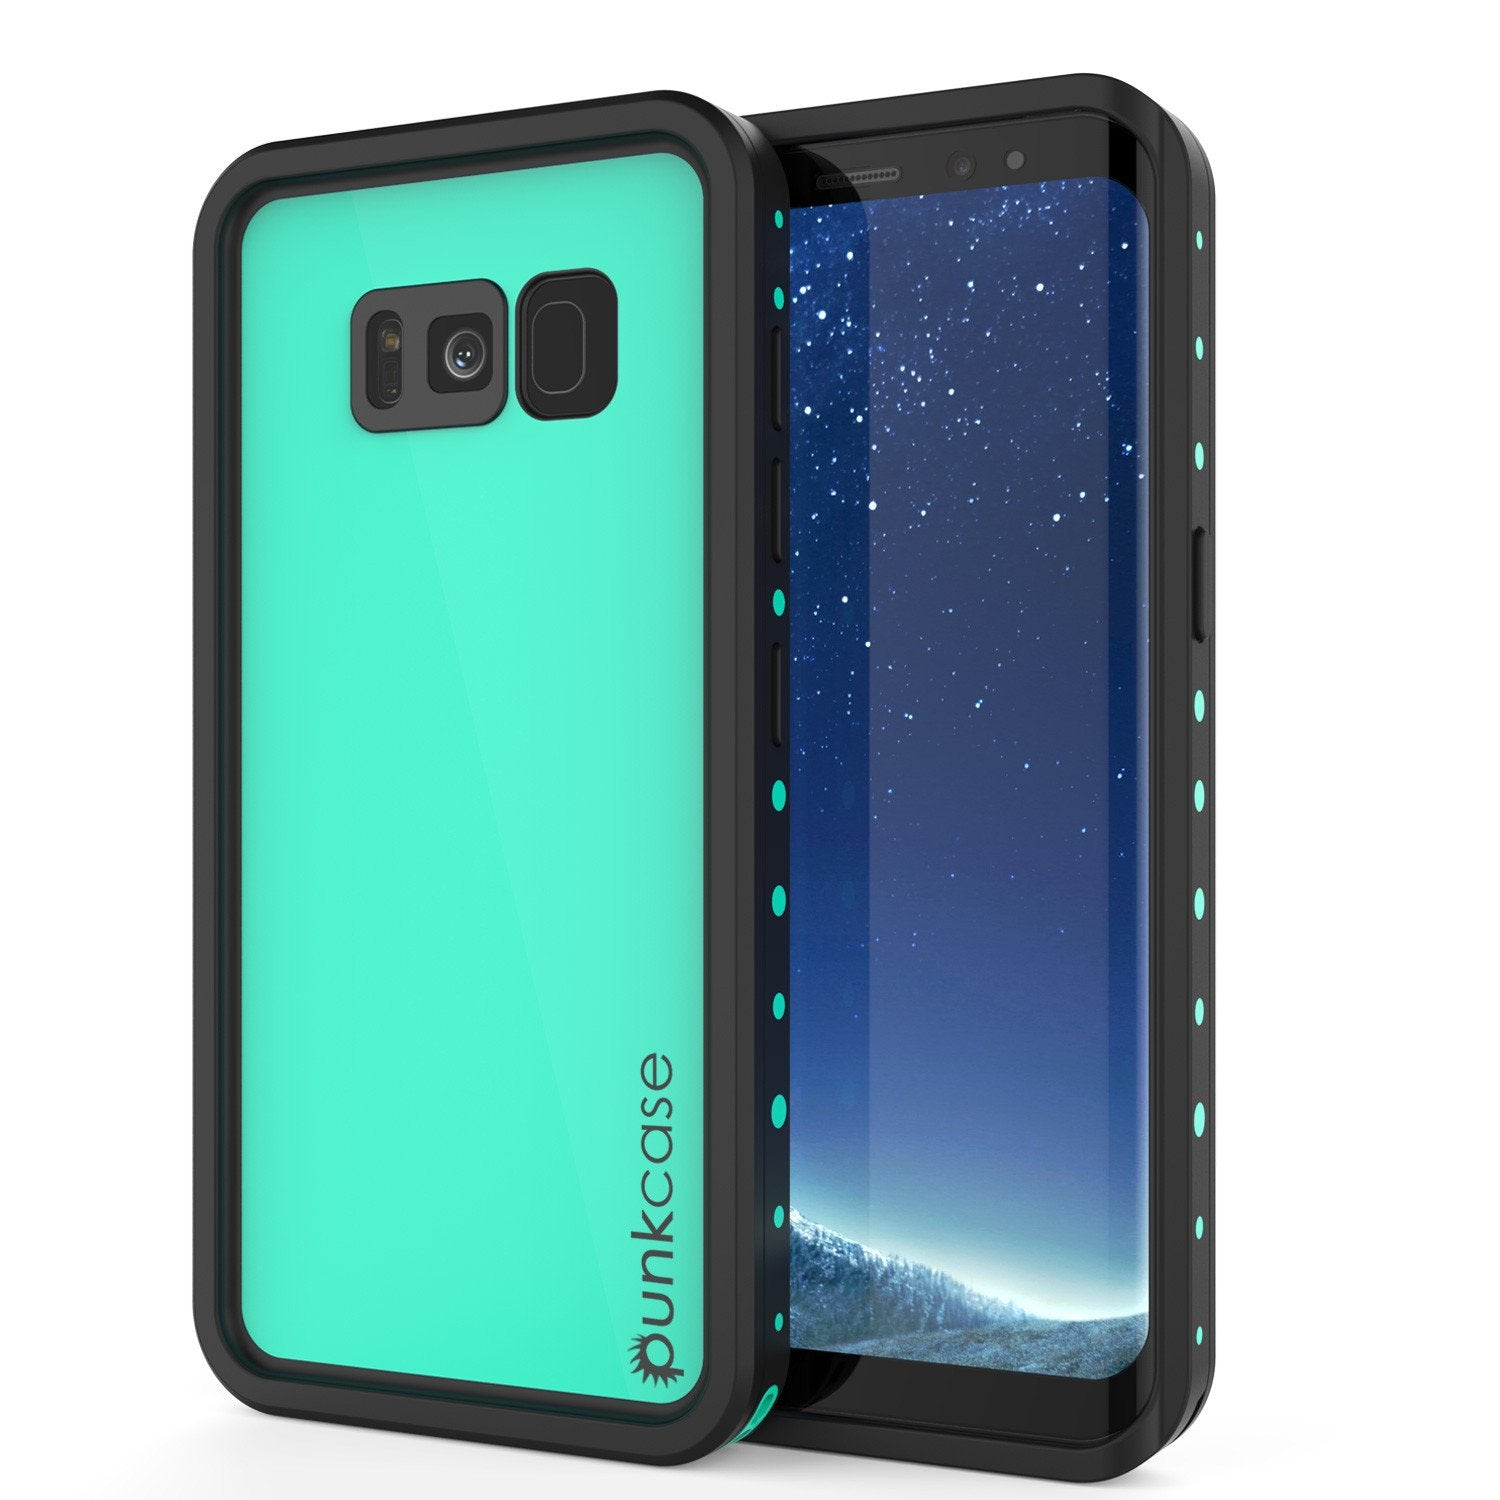 Galaxy S8 Waterproof Case PunkCase StudStar Teal Thin 6.6ft Underwater IP68 Shock/Snow Proof